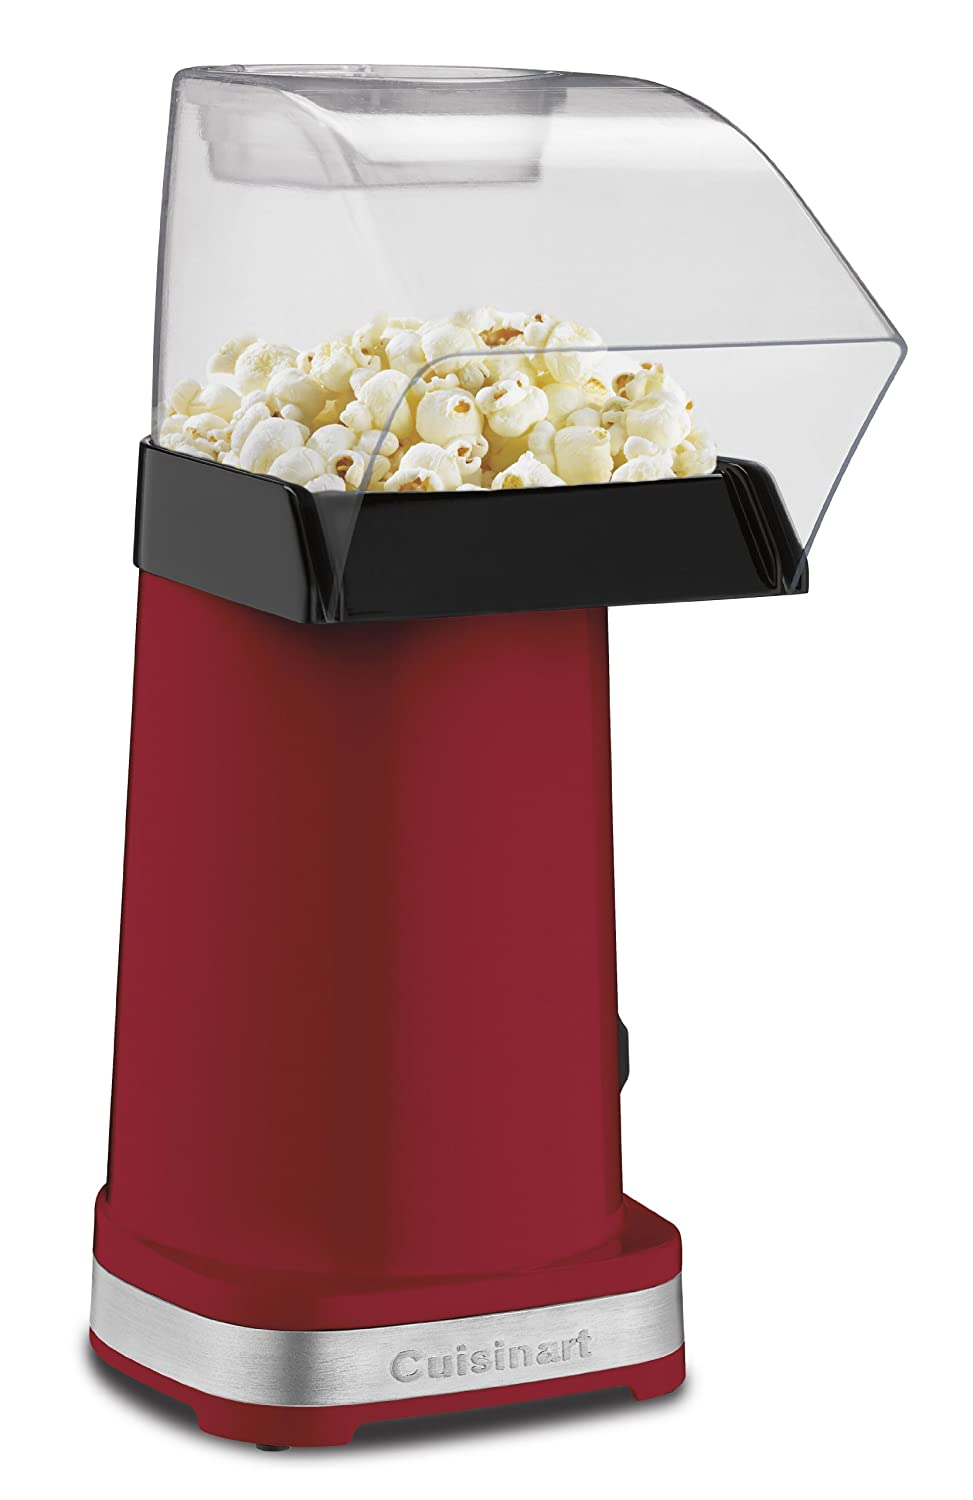 Cuisinart CPM-100 Hot Air Popcorn Machine Black Friday Deal 2020